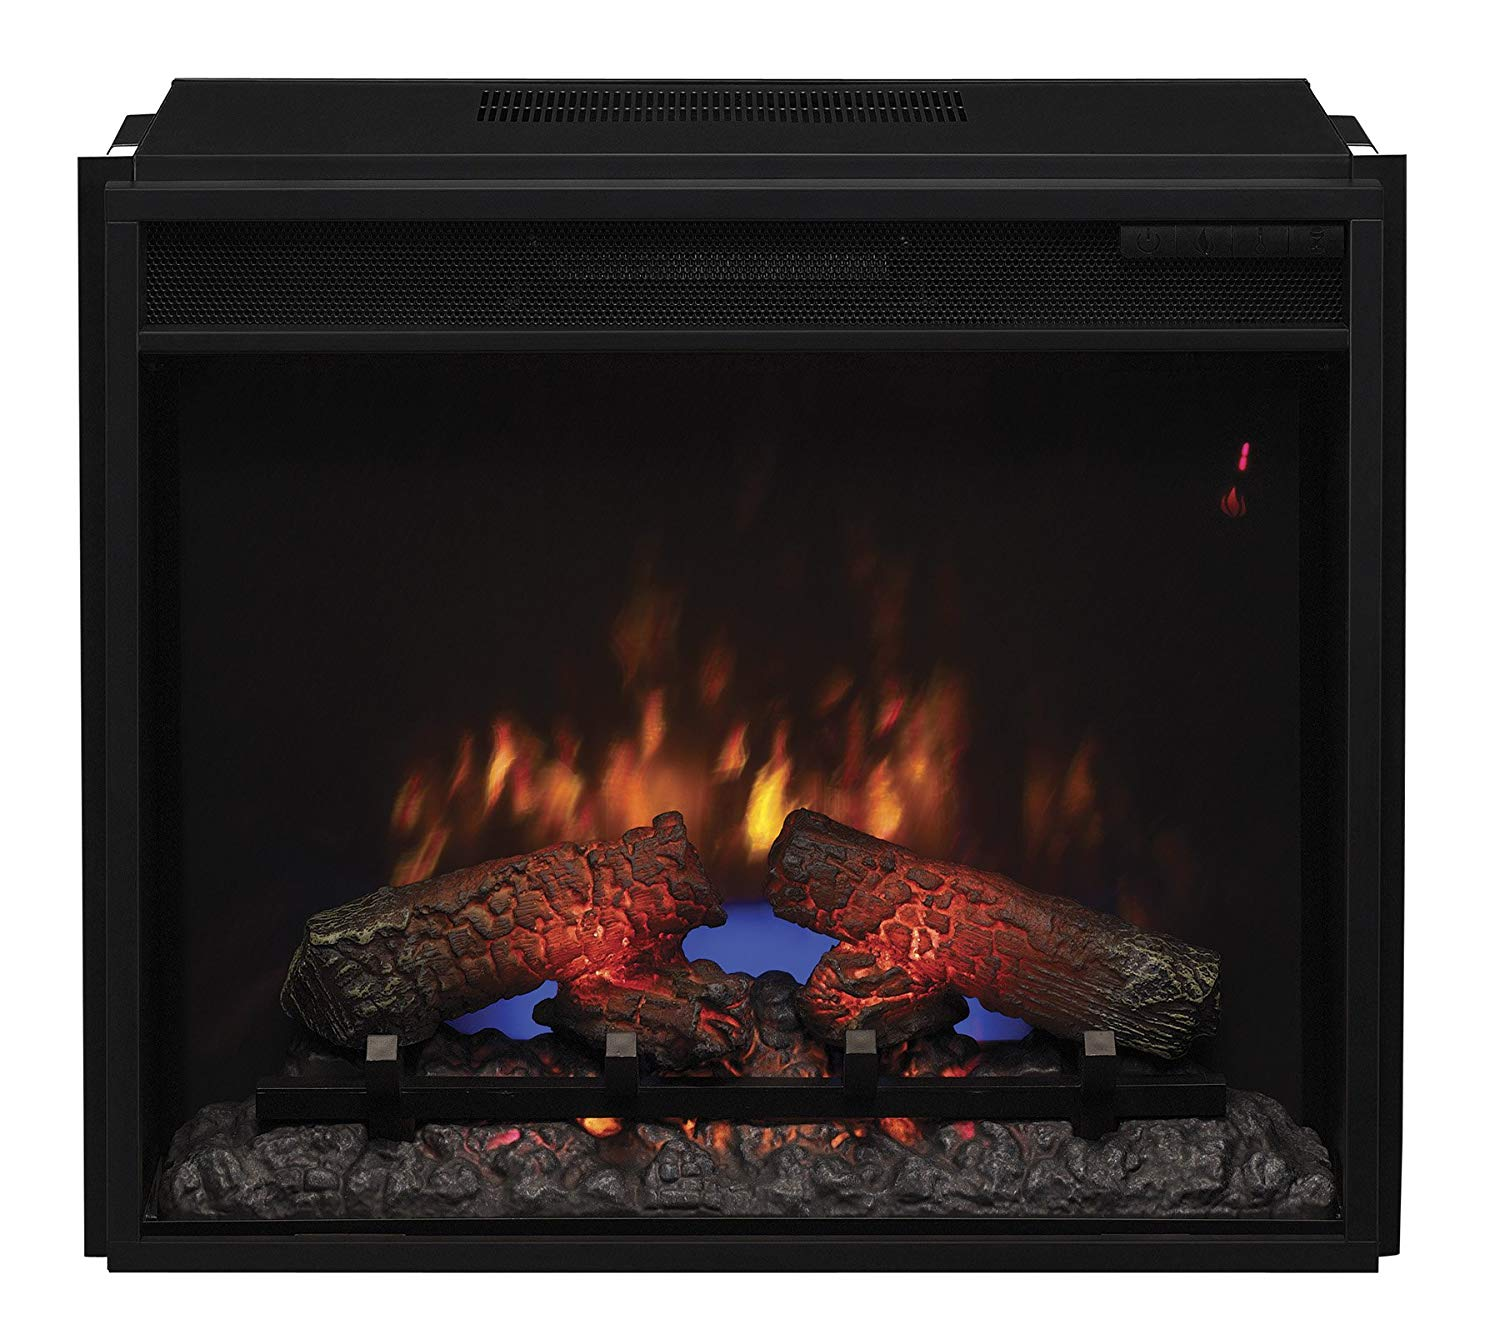 "Charmglow Electric Fireplace Best Of Classicflame 23ef031grp 23"" Electric Fireplace Insert with Safer Plug"